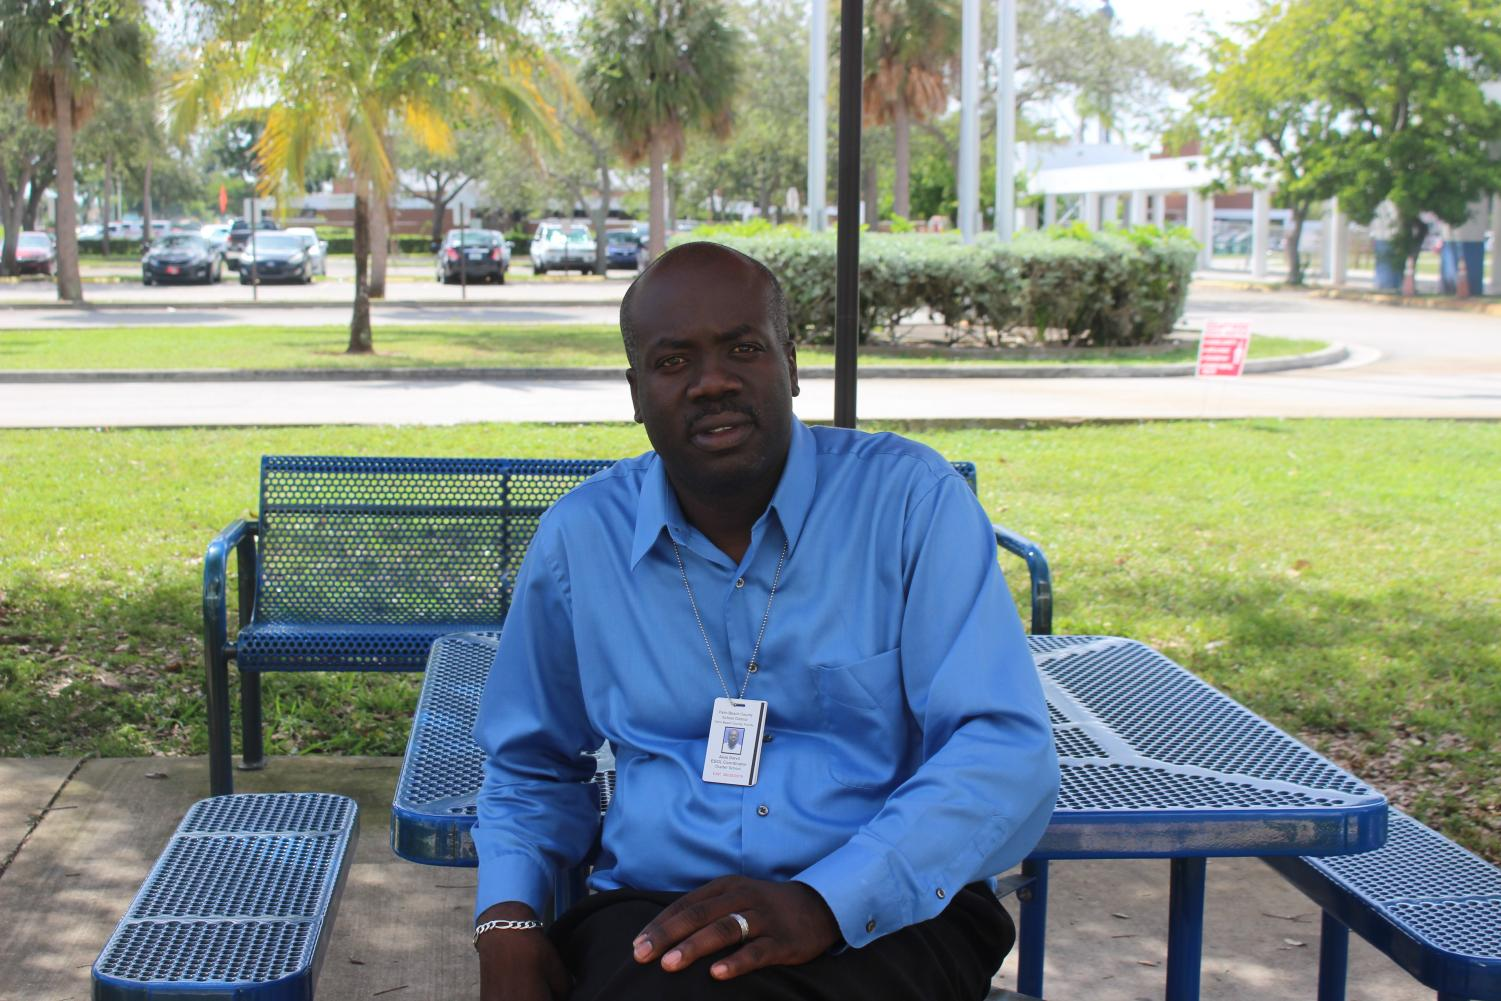 CULTURE CRAZY: Mr. Dorvil is both the ESOL contact person and sponsor of the ESOL club at Inlet.